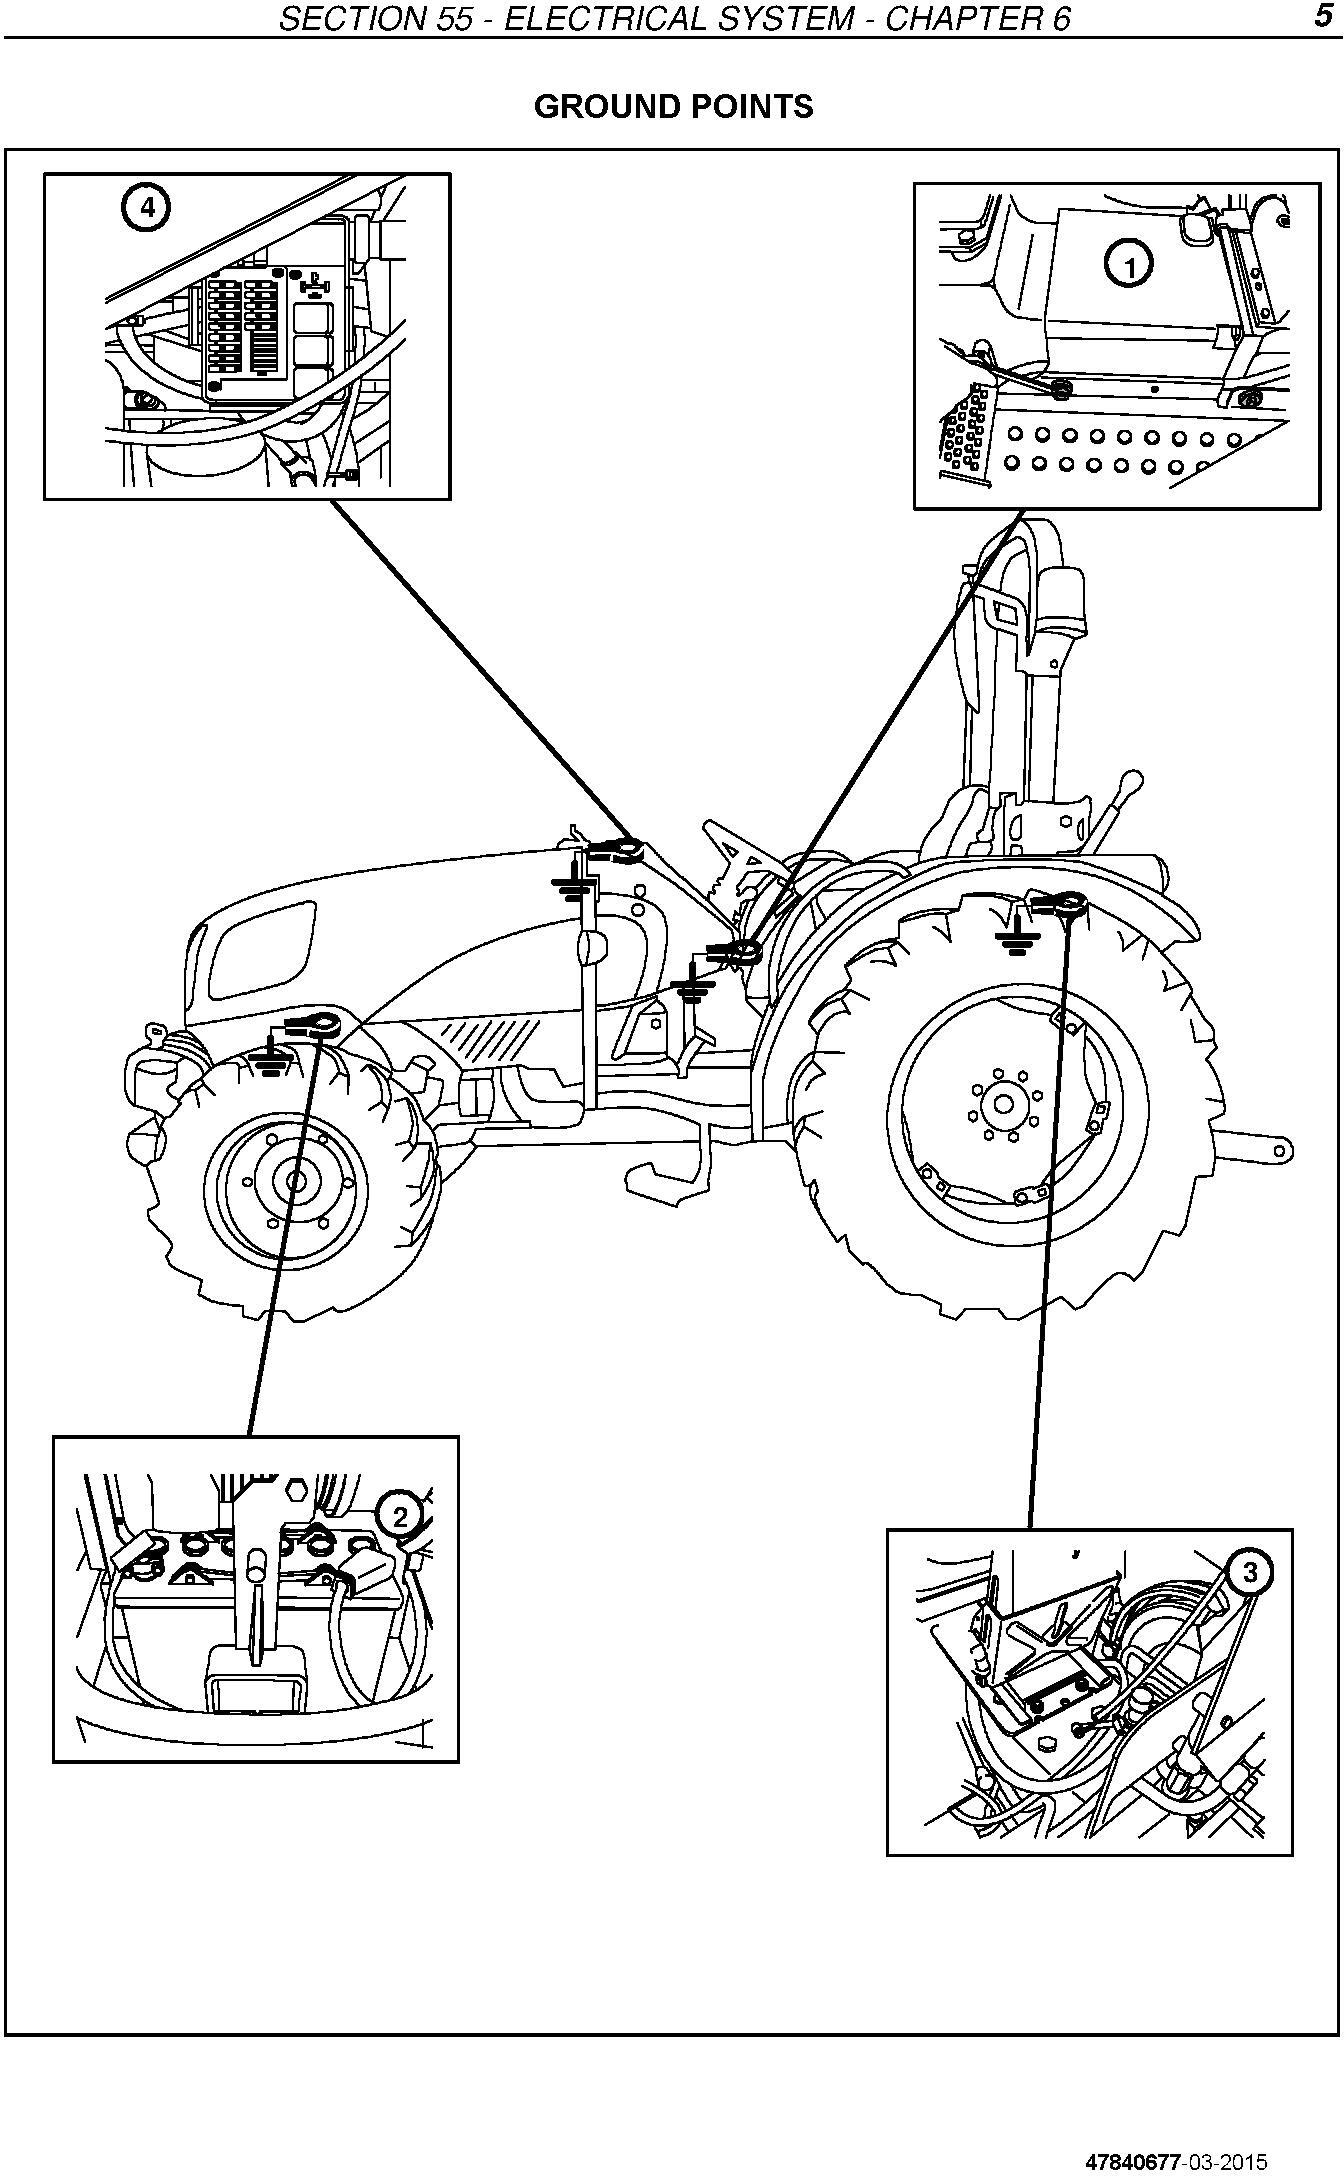 New Holland TD3.50 Tractor Service Manual - 1